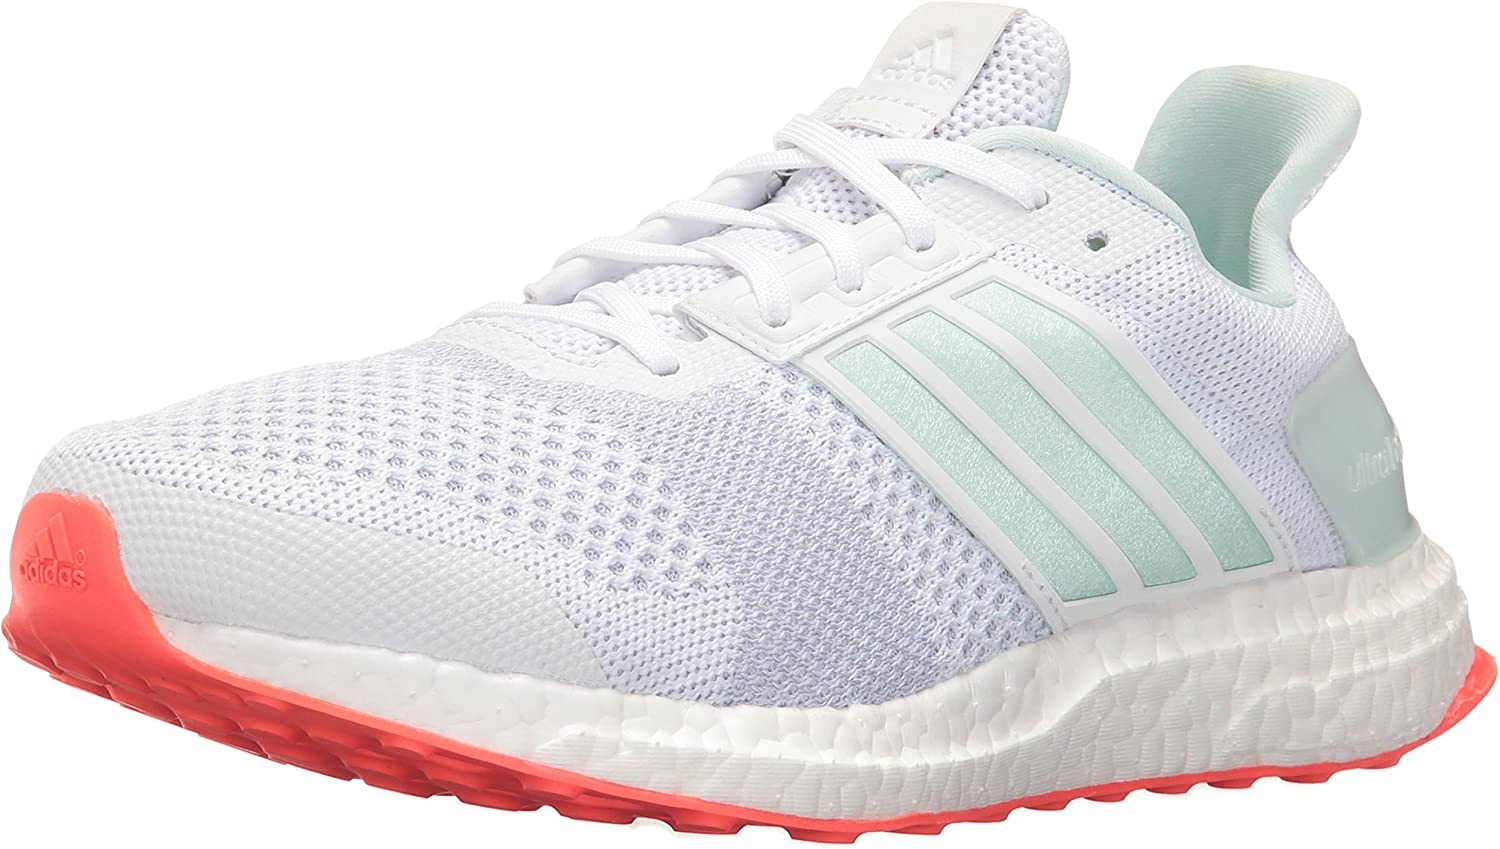 adidas Ultraboost ST Shoe – Women s Running